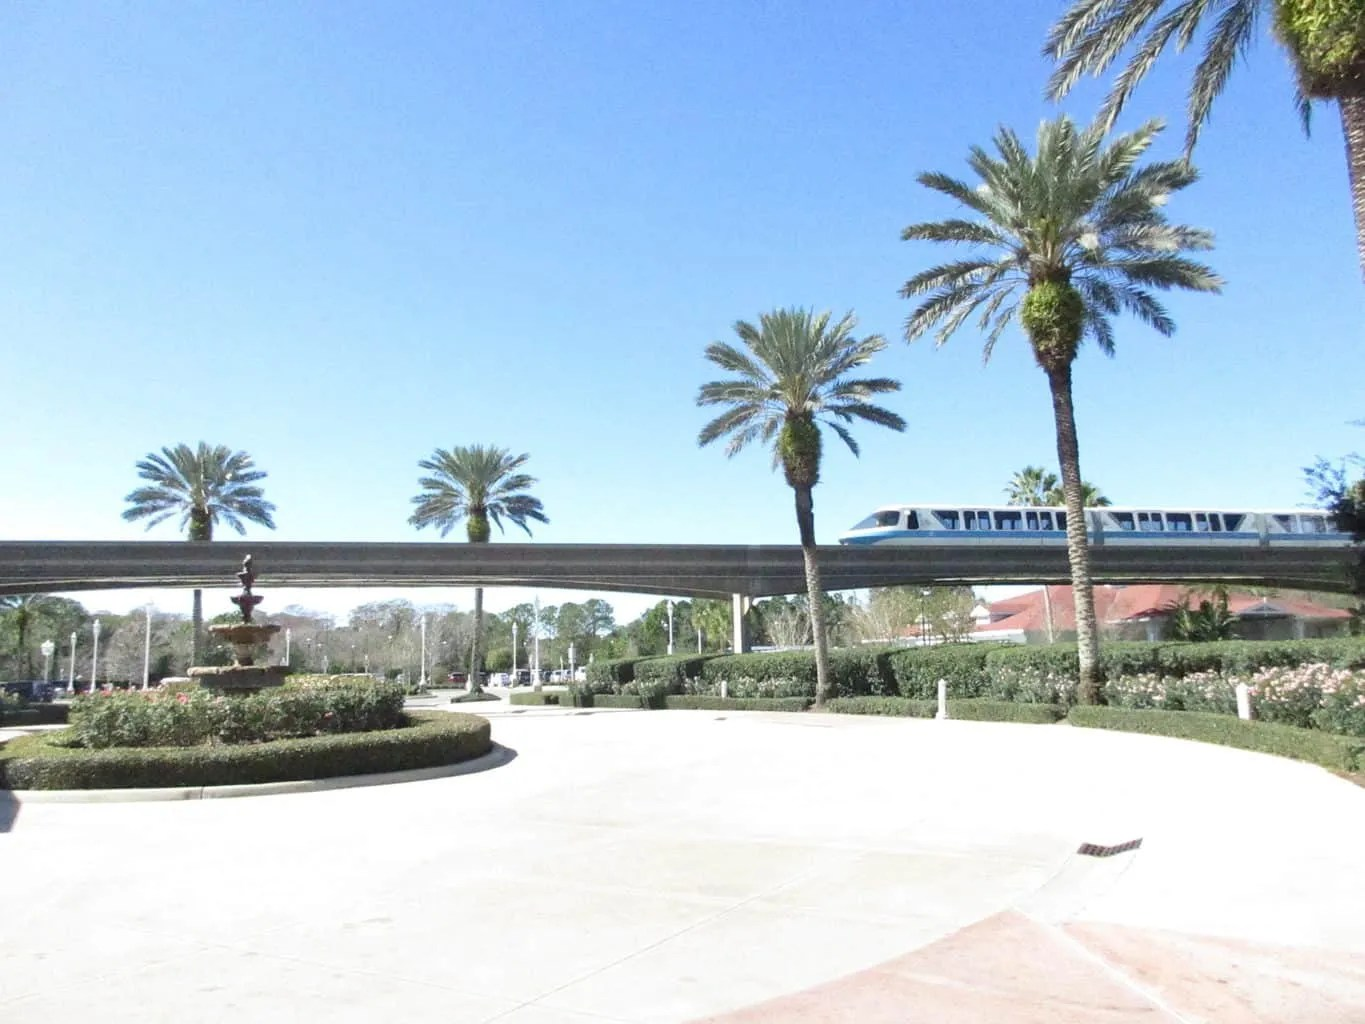 Monorail Resorts Day Trip without Disney Park Tickets